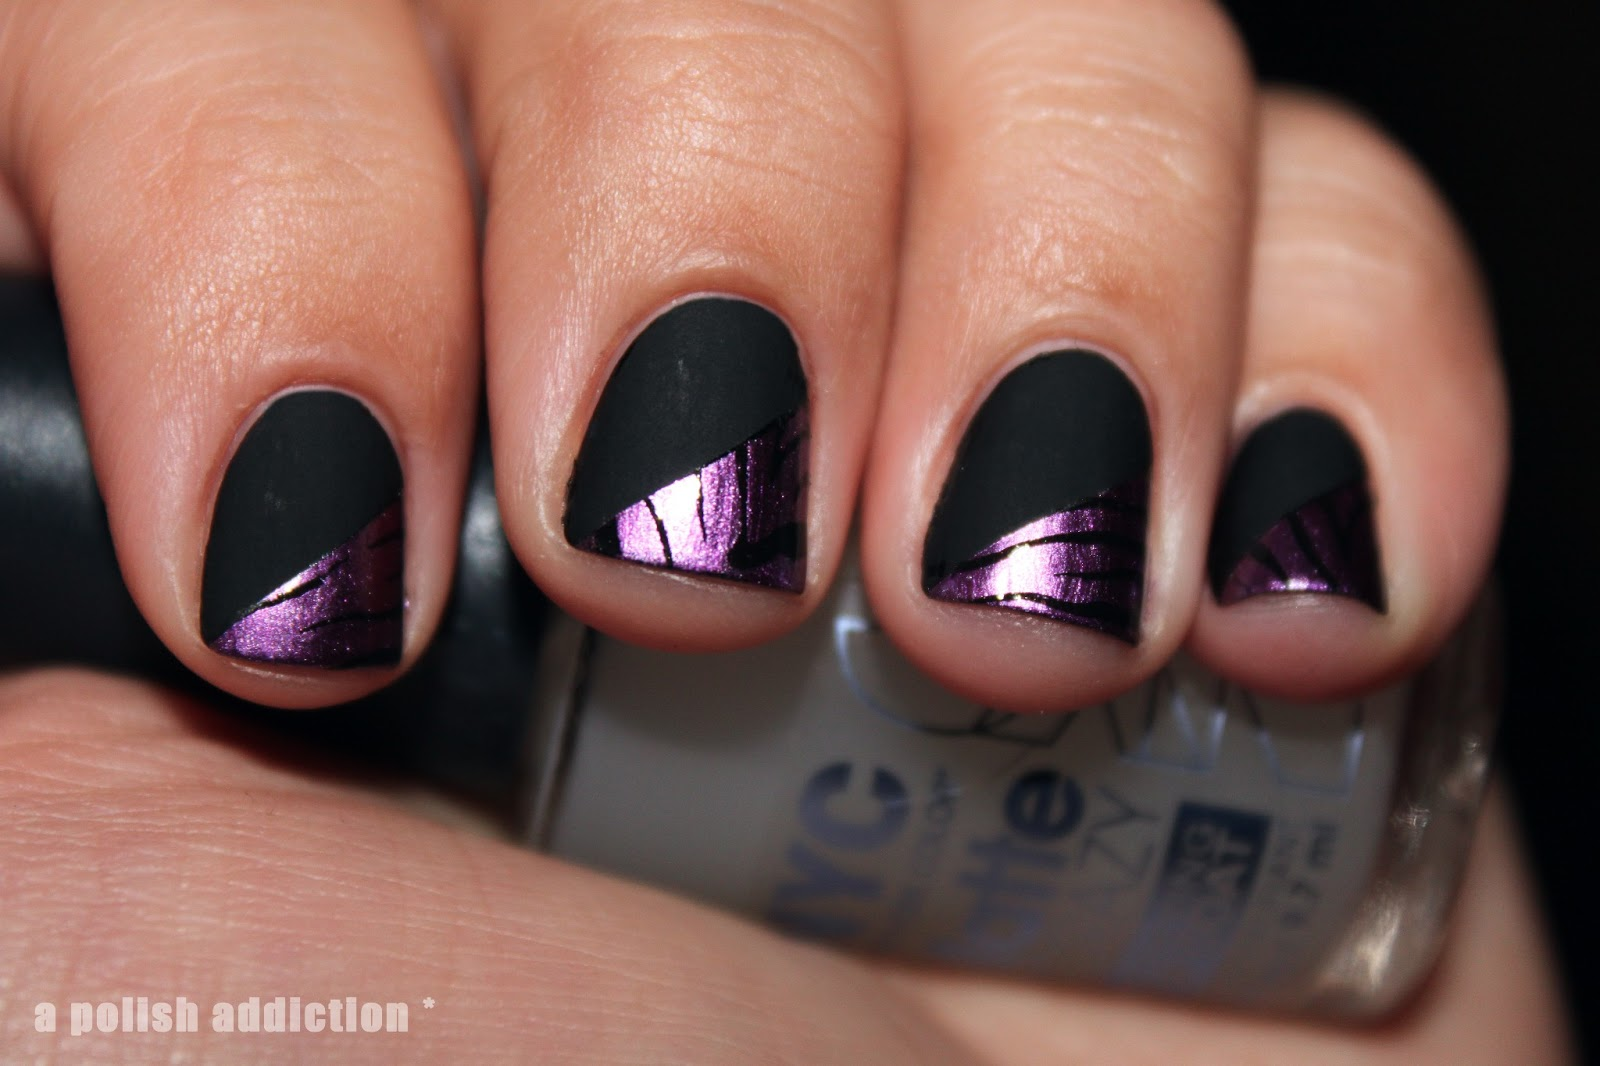 A Polish Addiction: Matte Black and Purple Zebra Stamping Nail Art